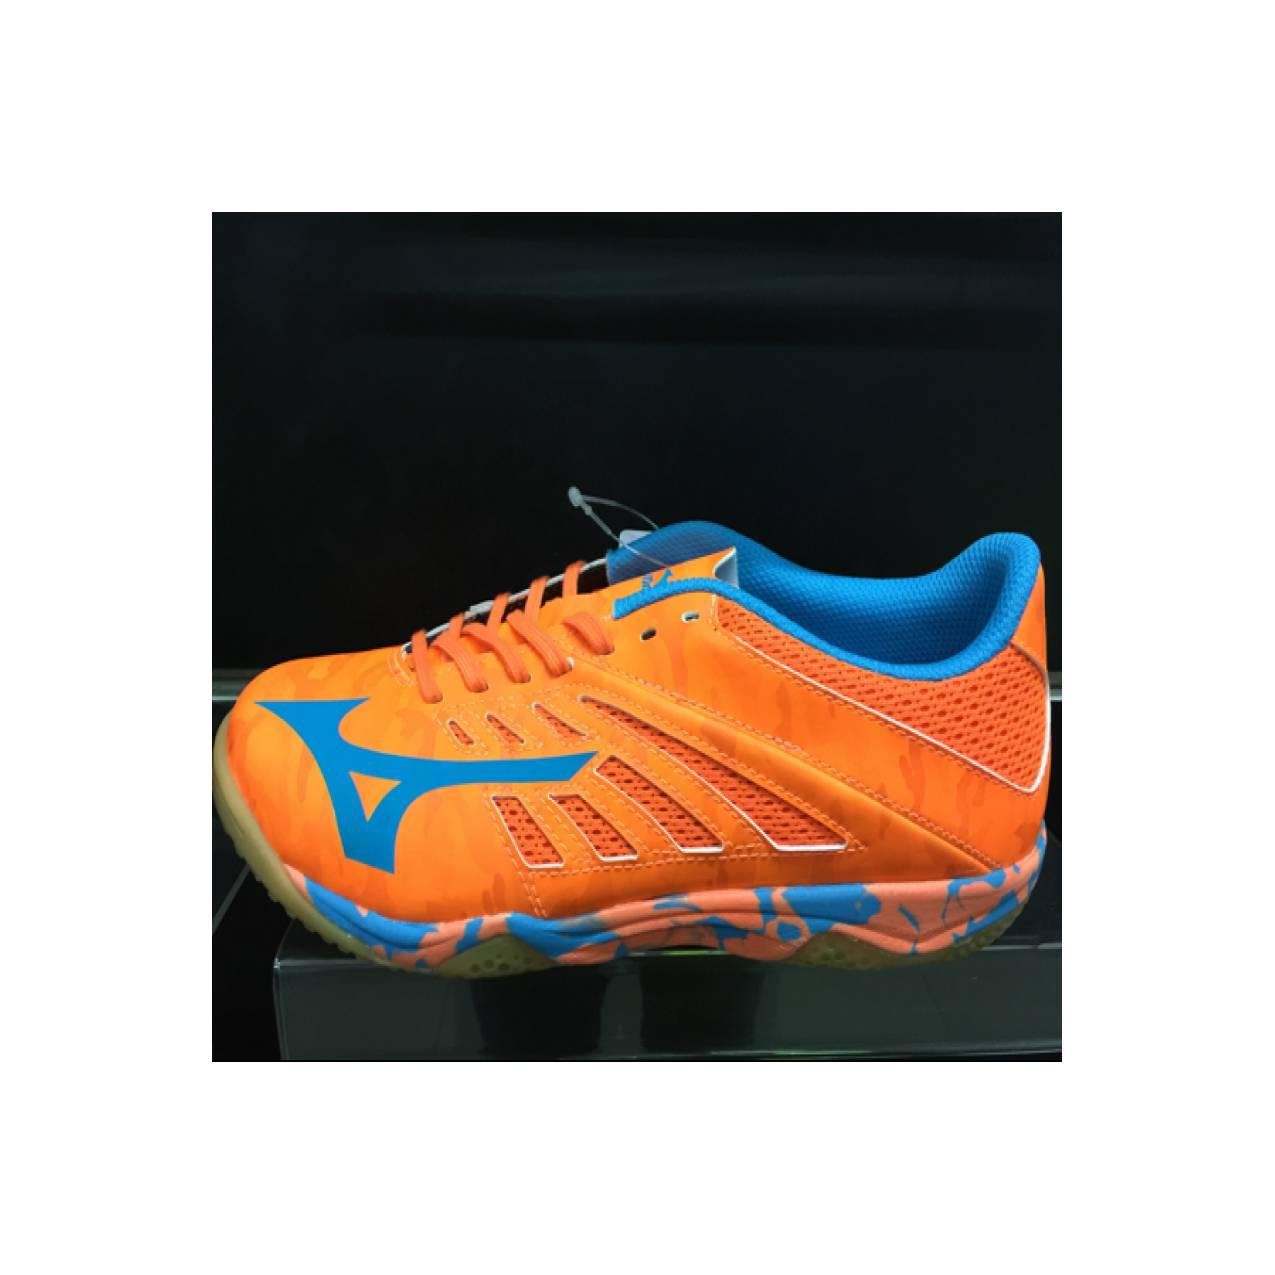 Sepatu futsal mizuno original basara 103 sala orange clown/blue